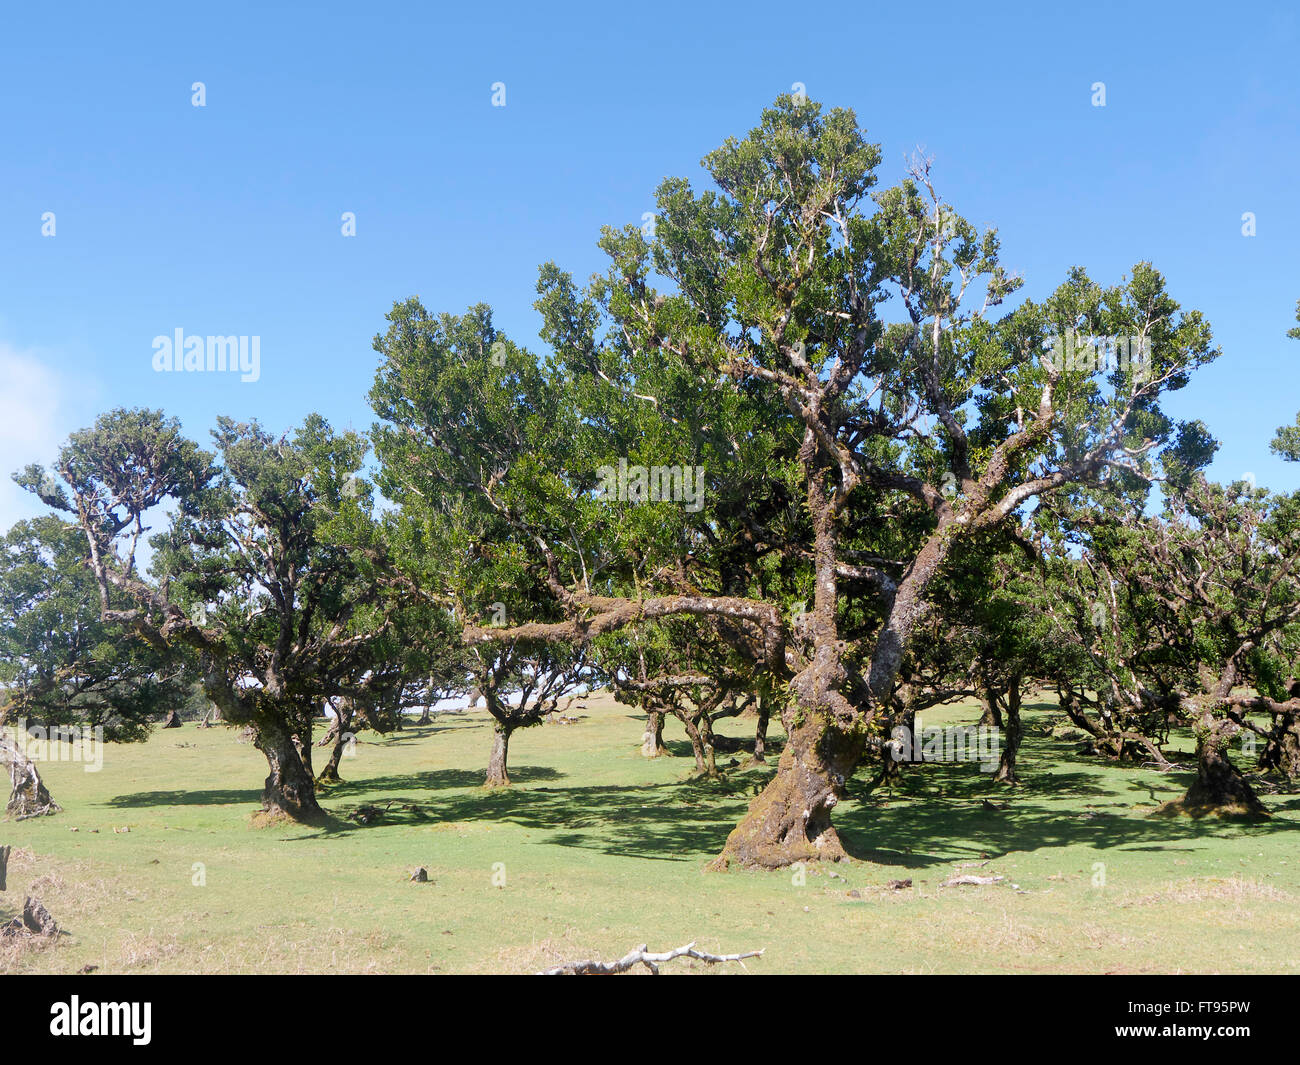 Laurel trees in Madeira, March 2016 - Stock Image